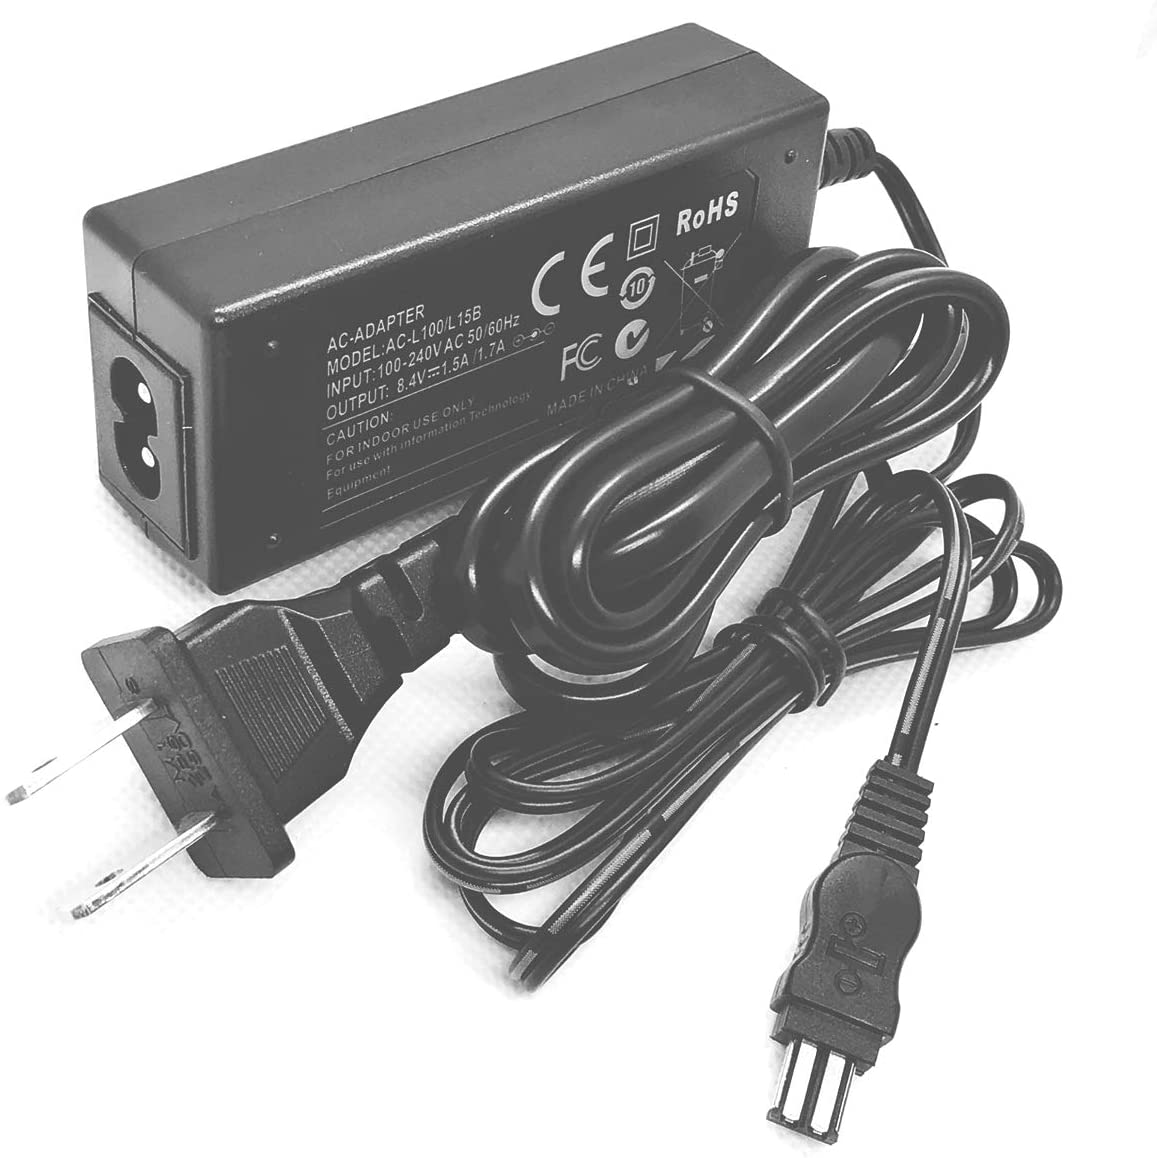 AC Power Adapter Charger for Sony Cyber-Shot DSC-S30, DSC-S50, DSC-S70, DSC-S75, DSC-S85 Digital Camera